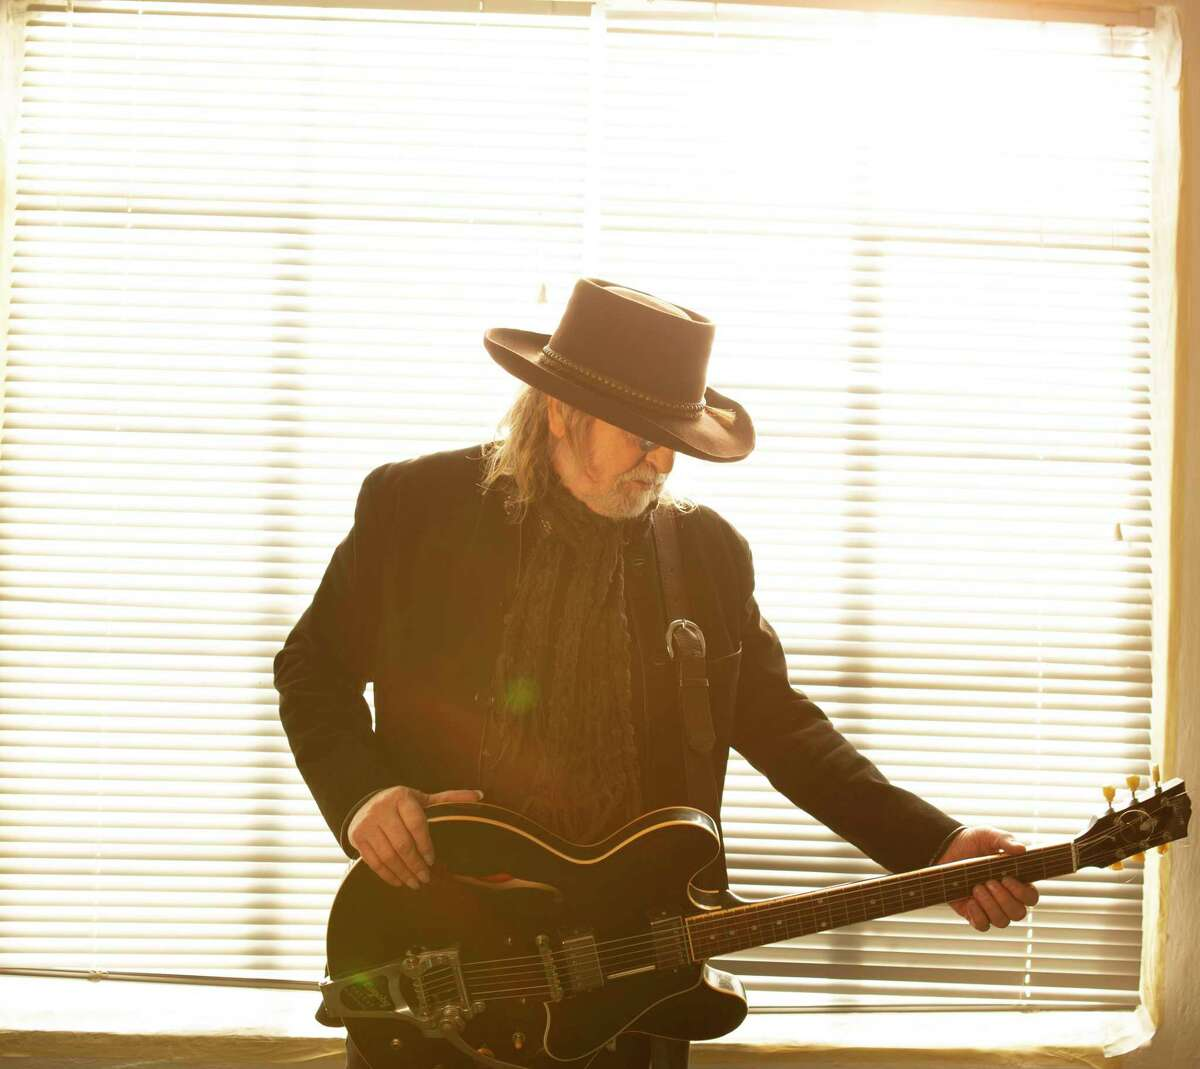 Texas singer-songwriter Ray Wylie Hubbard will perform at on Sept. 3 and 4 at Main Street Crossing in Tomball.